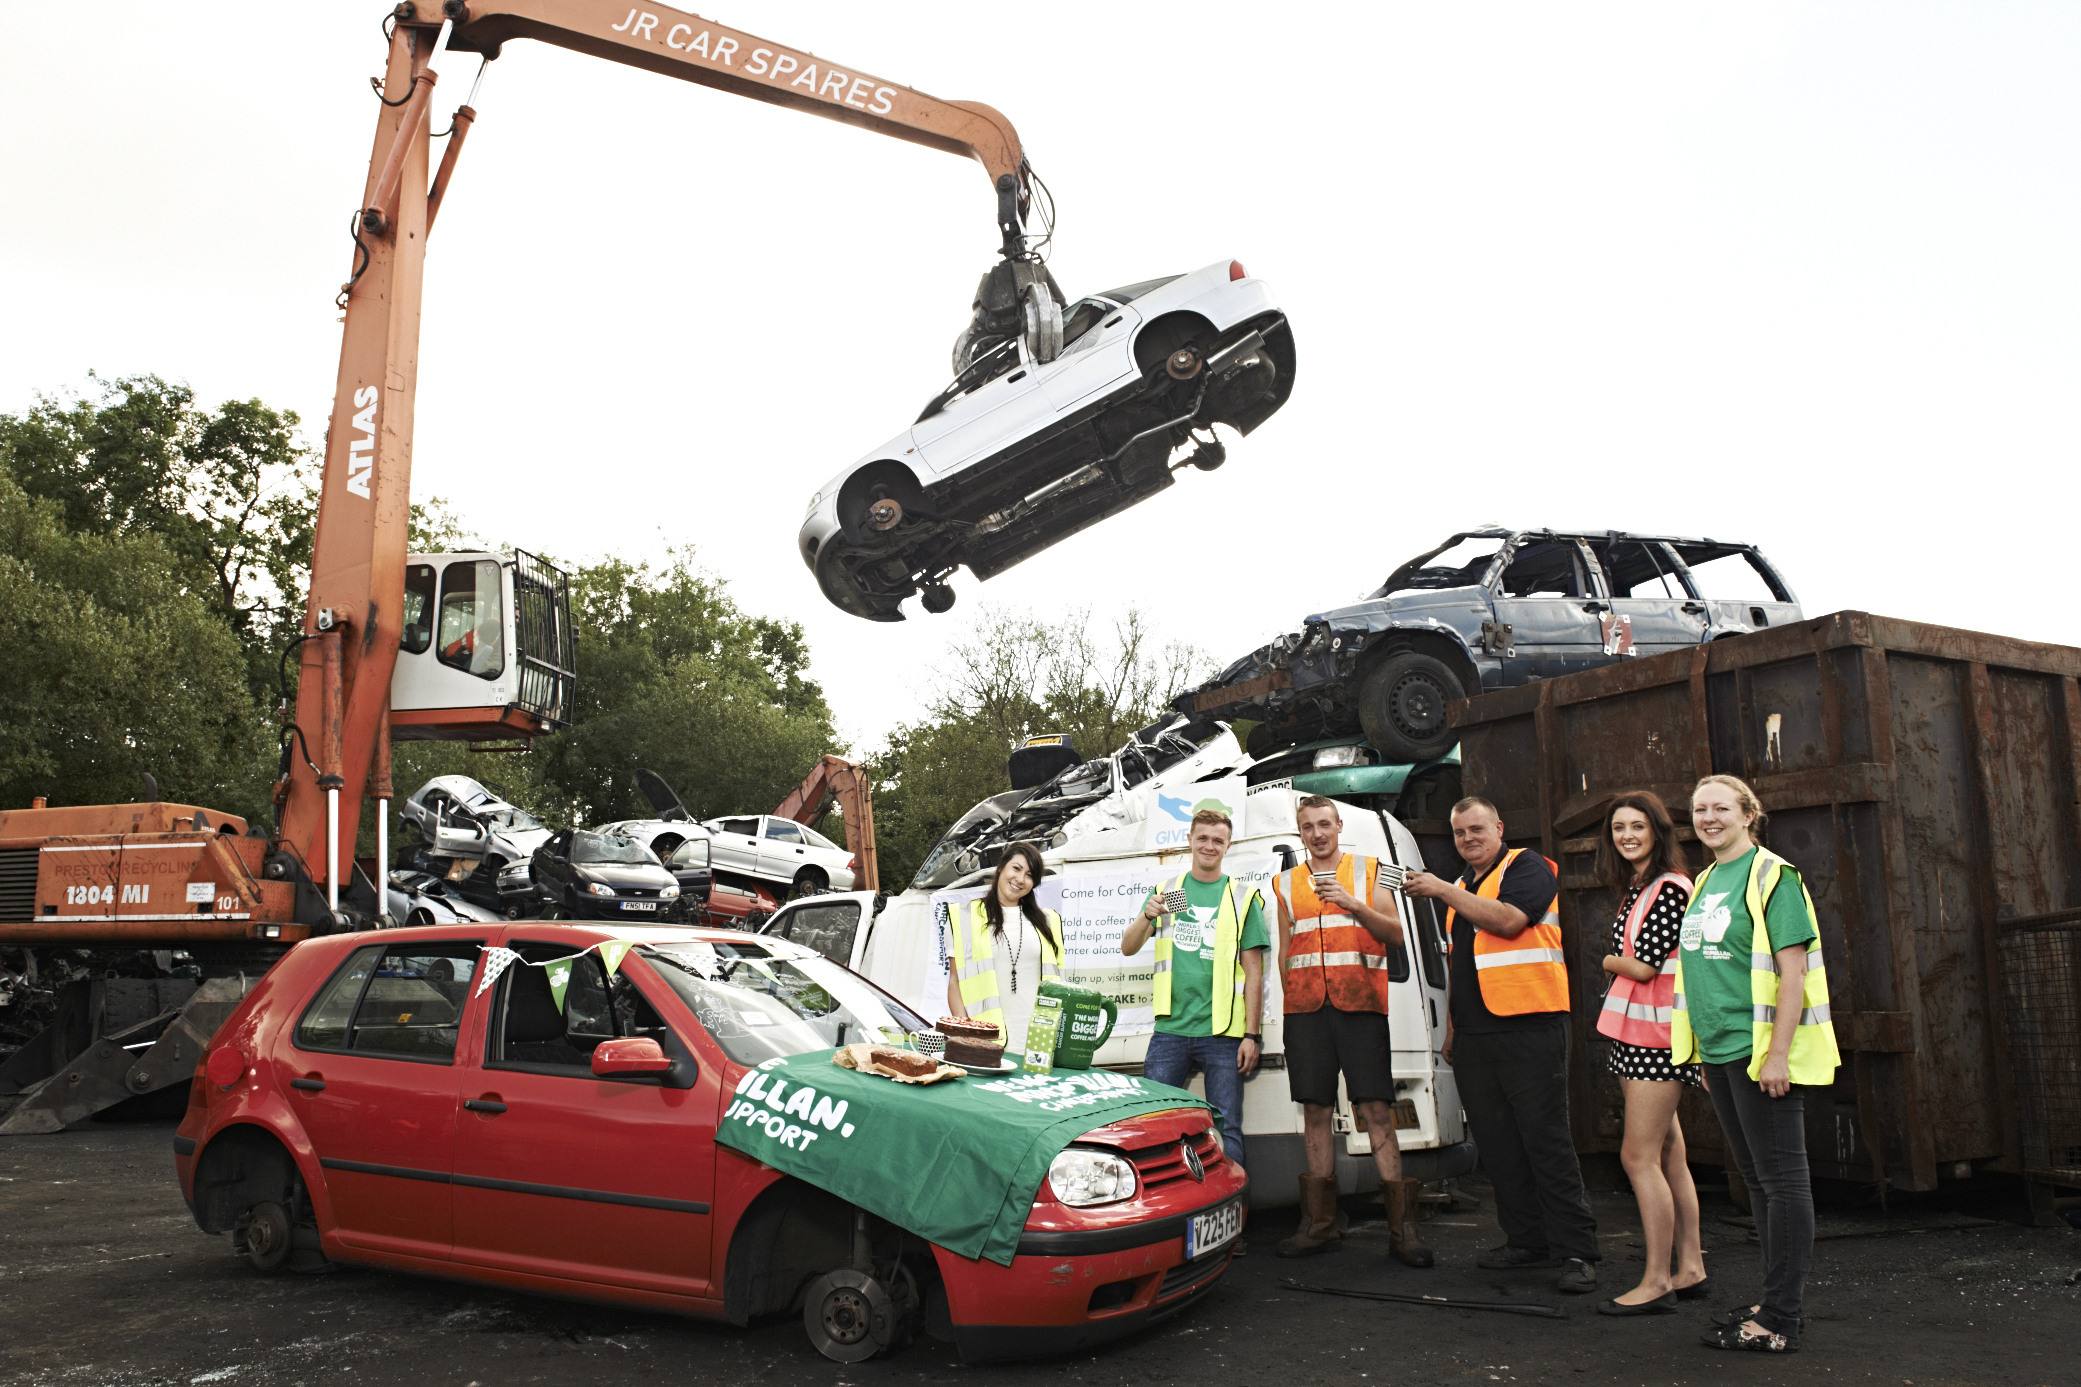 Giveacar Raise Over £2 Million For Charity